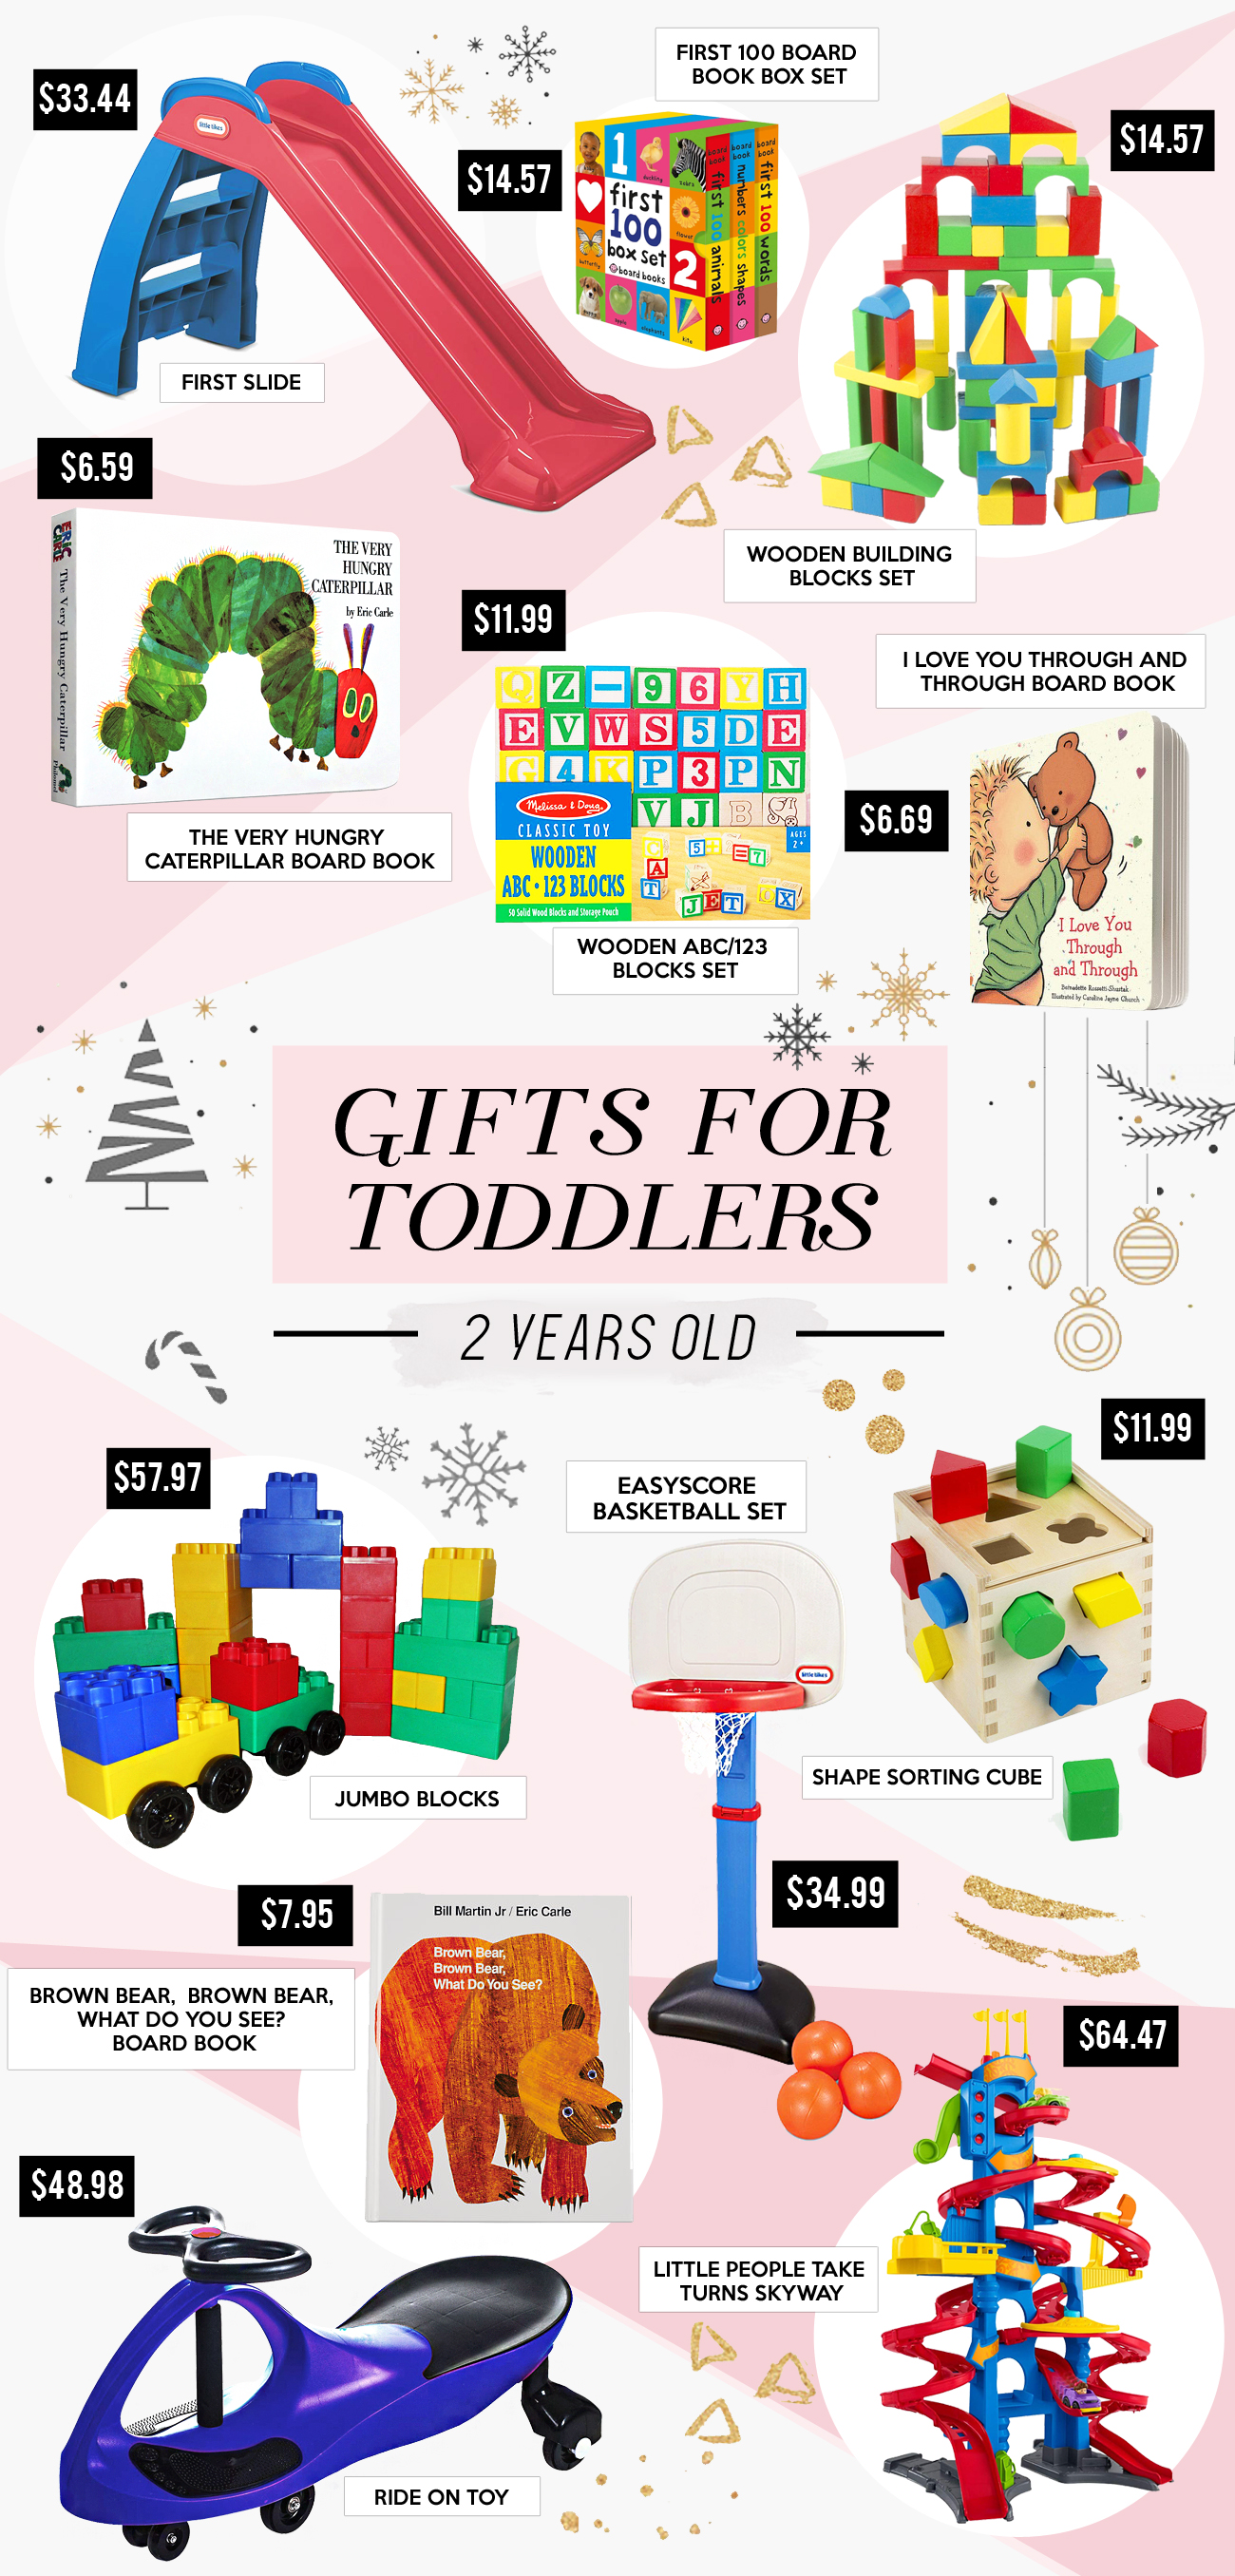 Gift Guides - 2 years old - page2